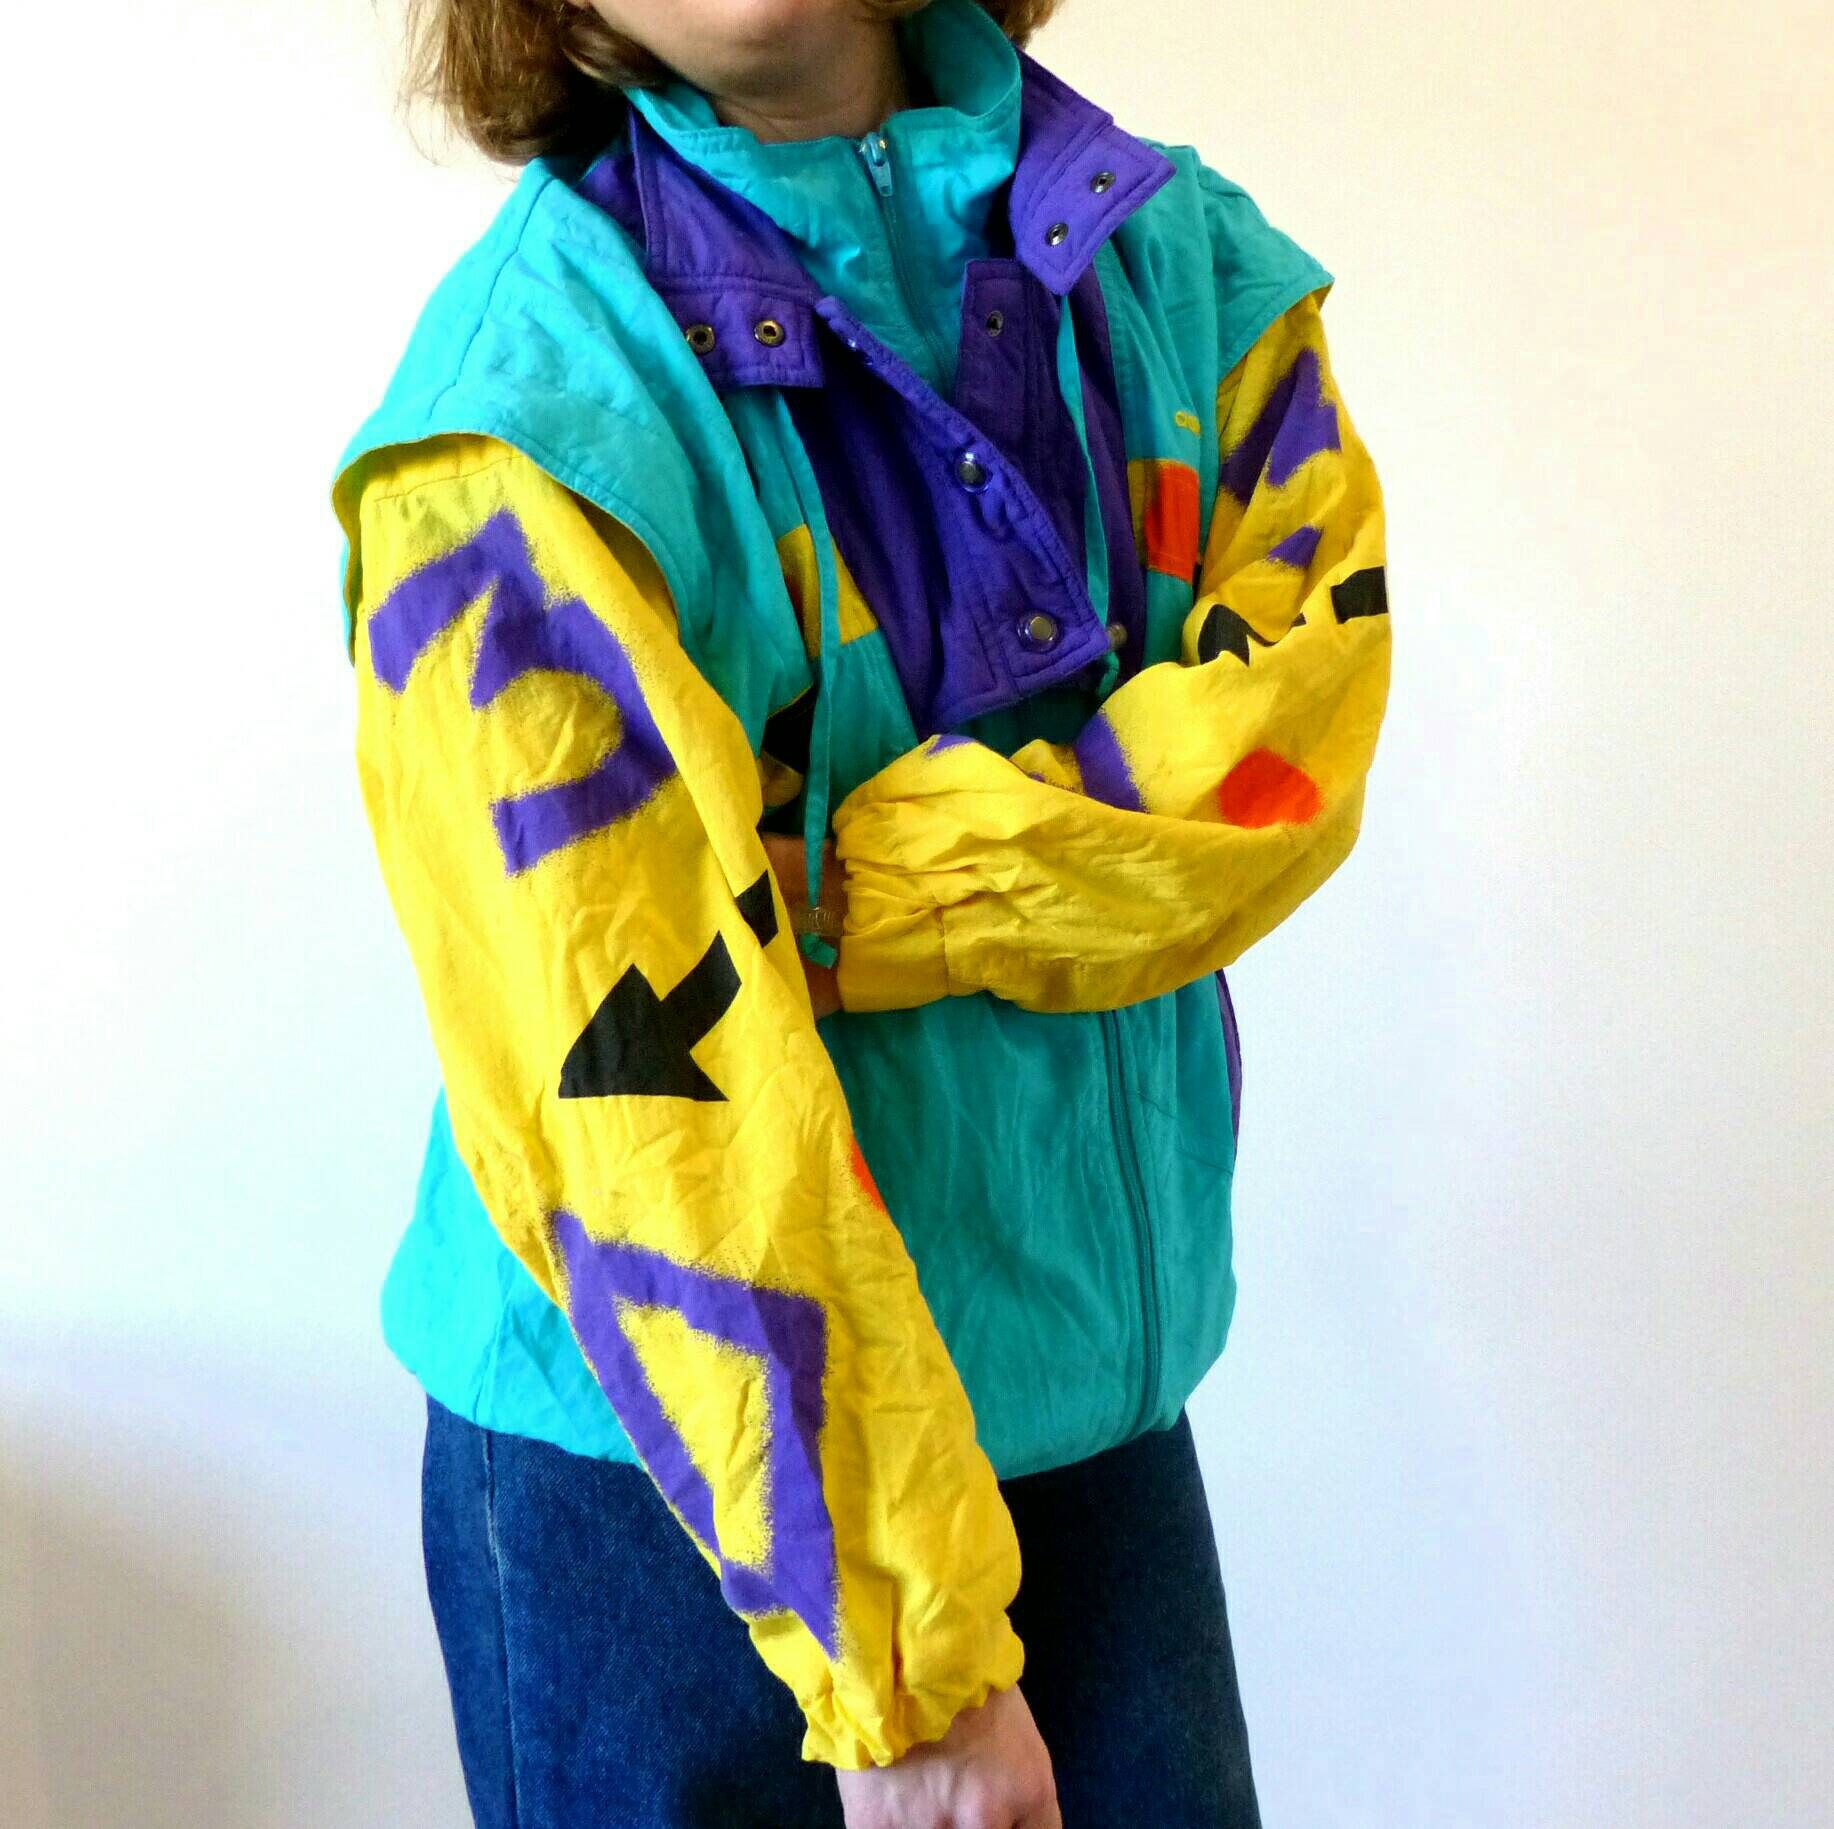 Adidas Vintage multicolored 80s jacket, multicolored Vintage crazy jacket, unisex 635793